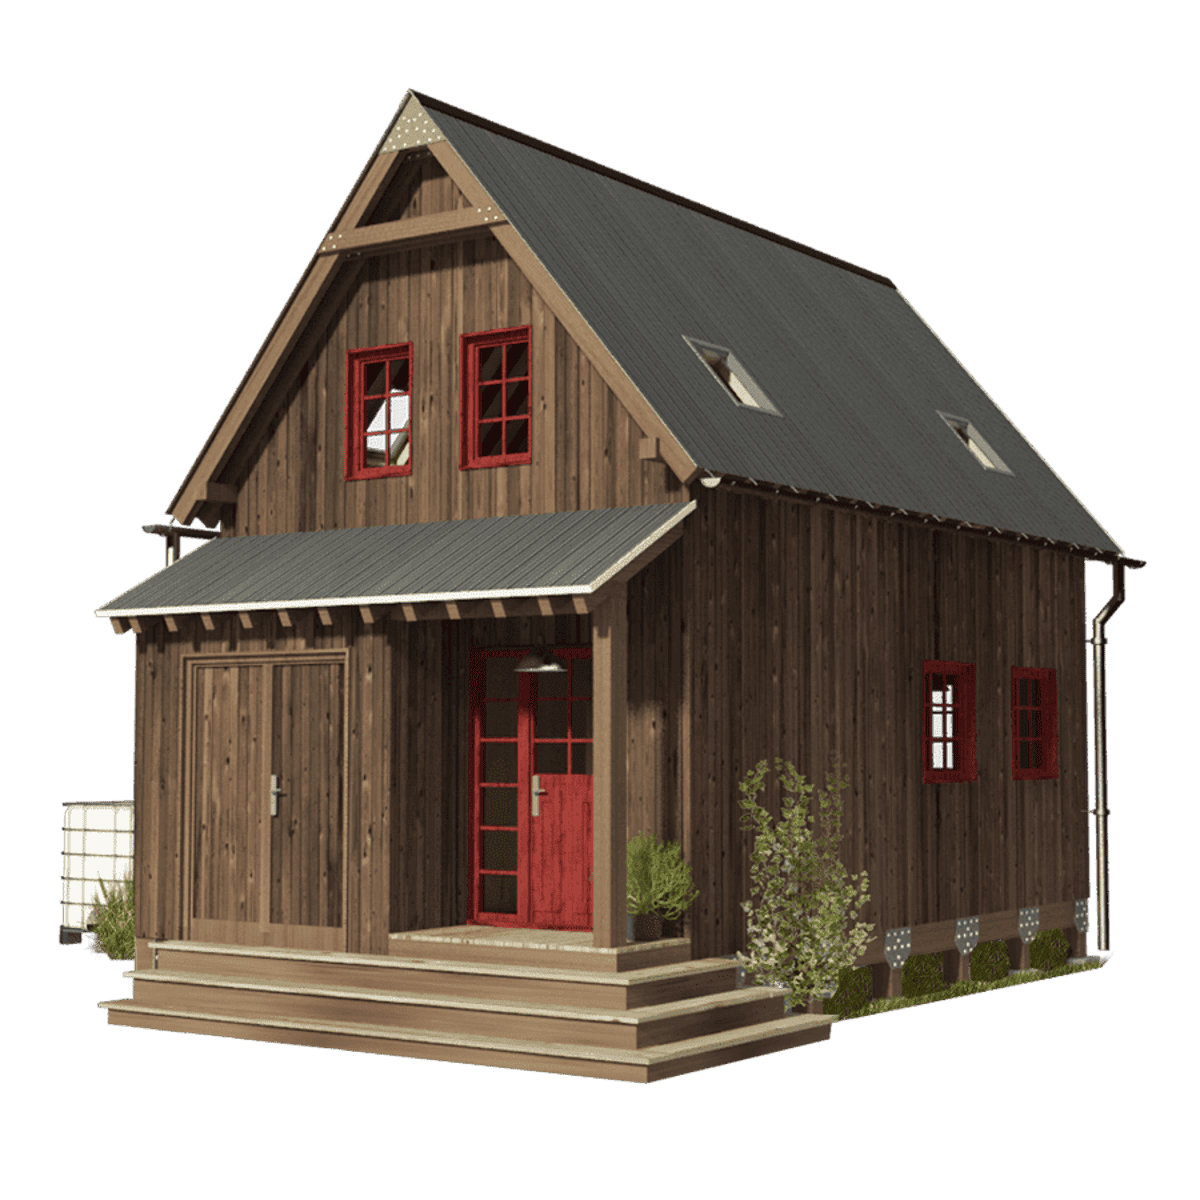 21 Bedroom Home Plans - Home and Aplliances